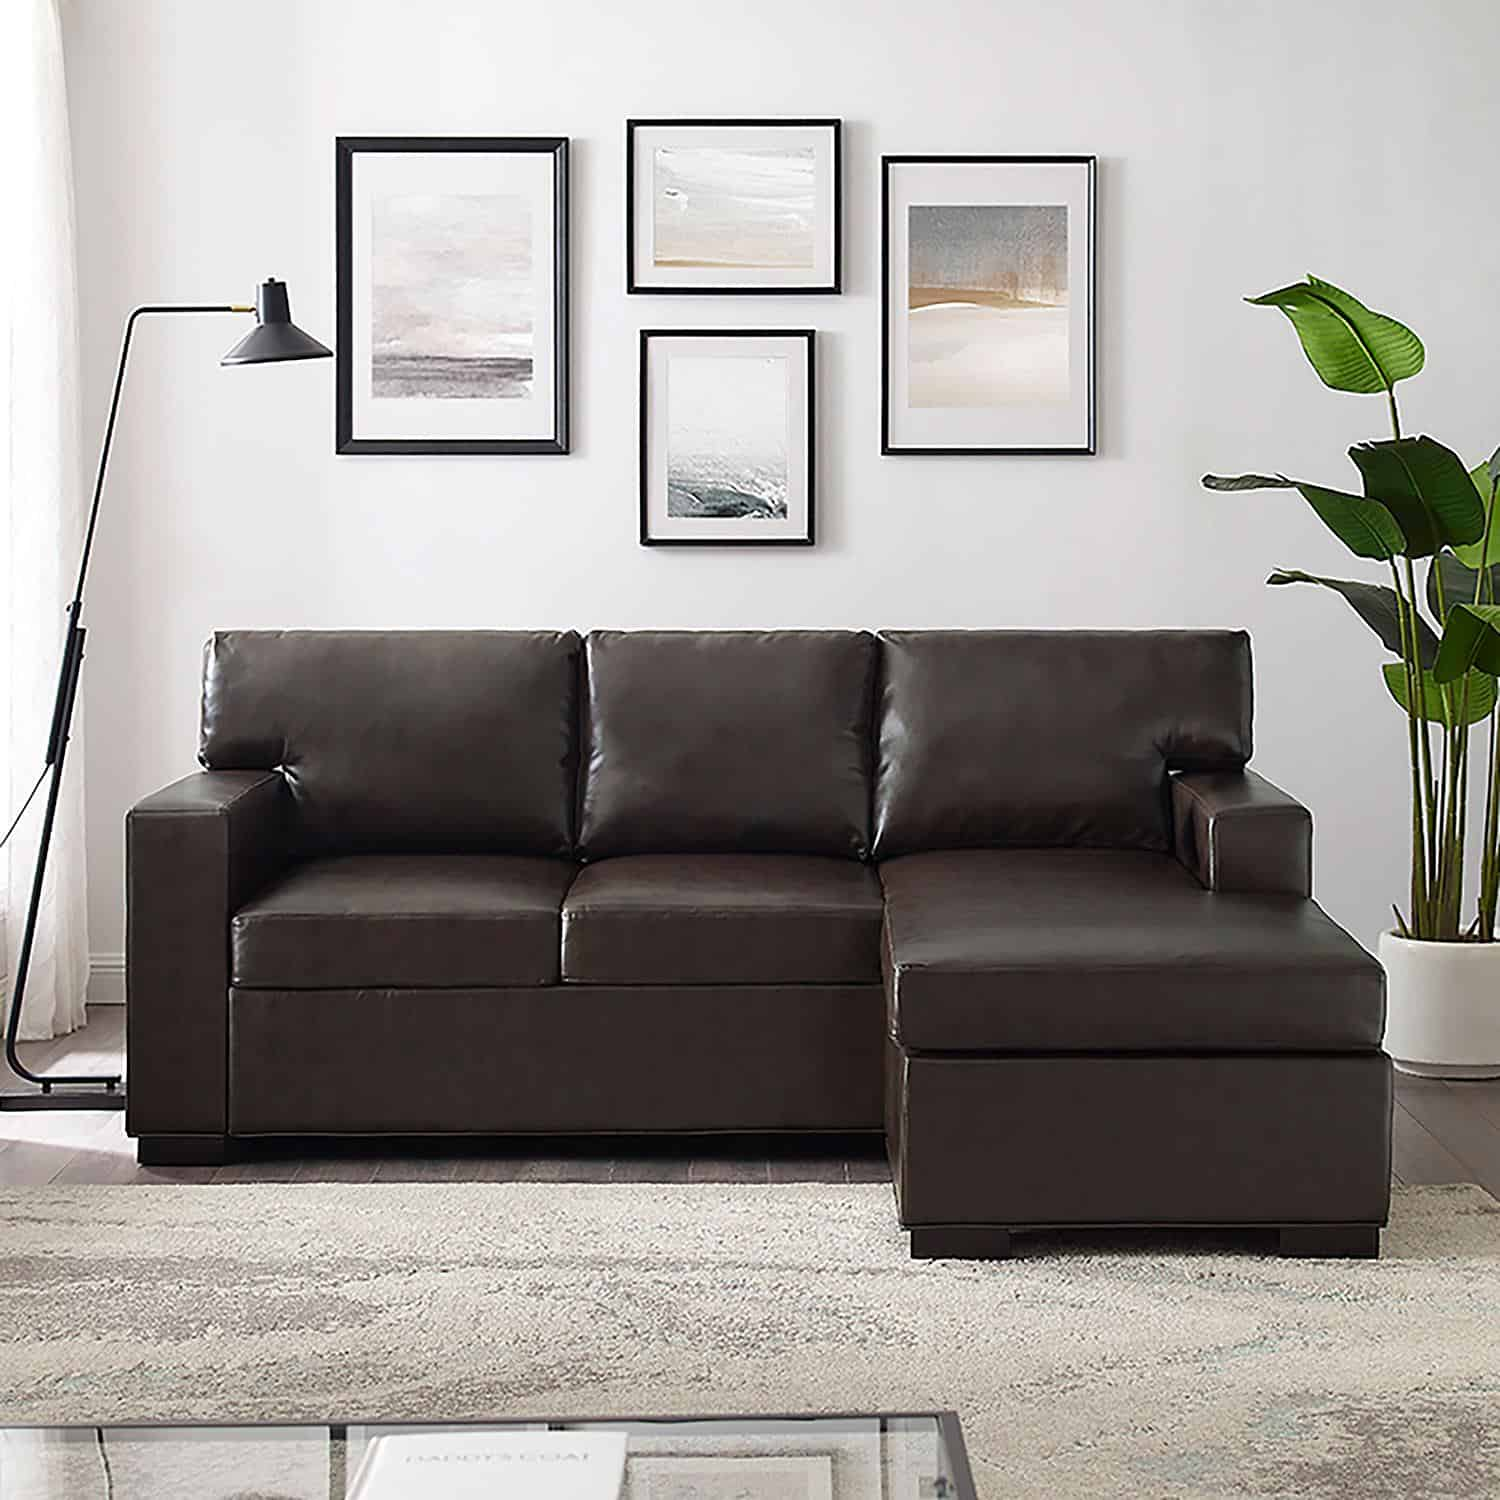 A brown leather sectional couch in a living room from Sam\'s Club.